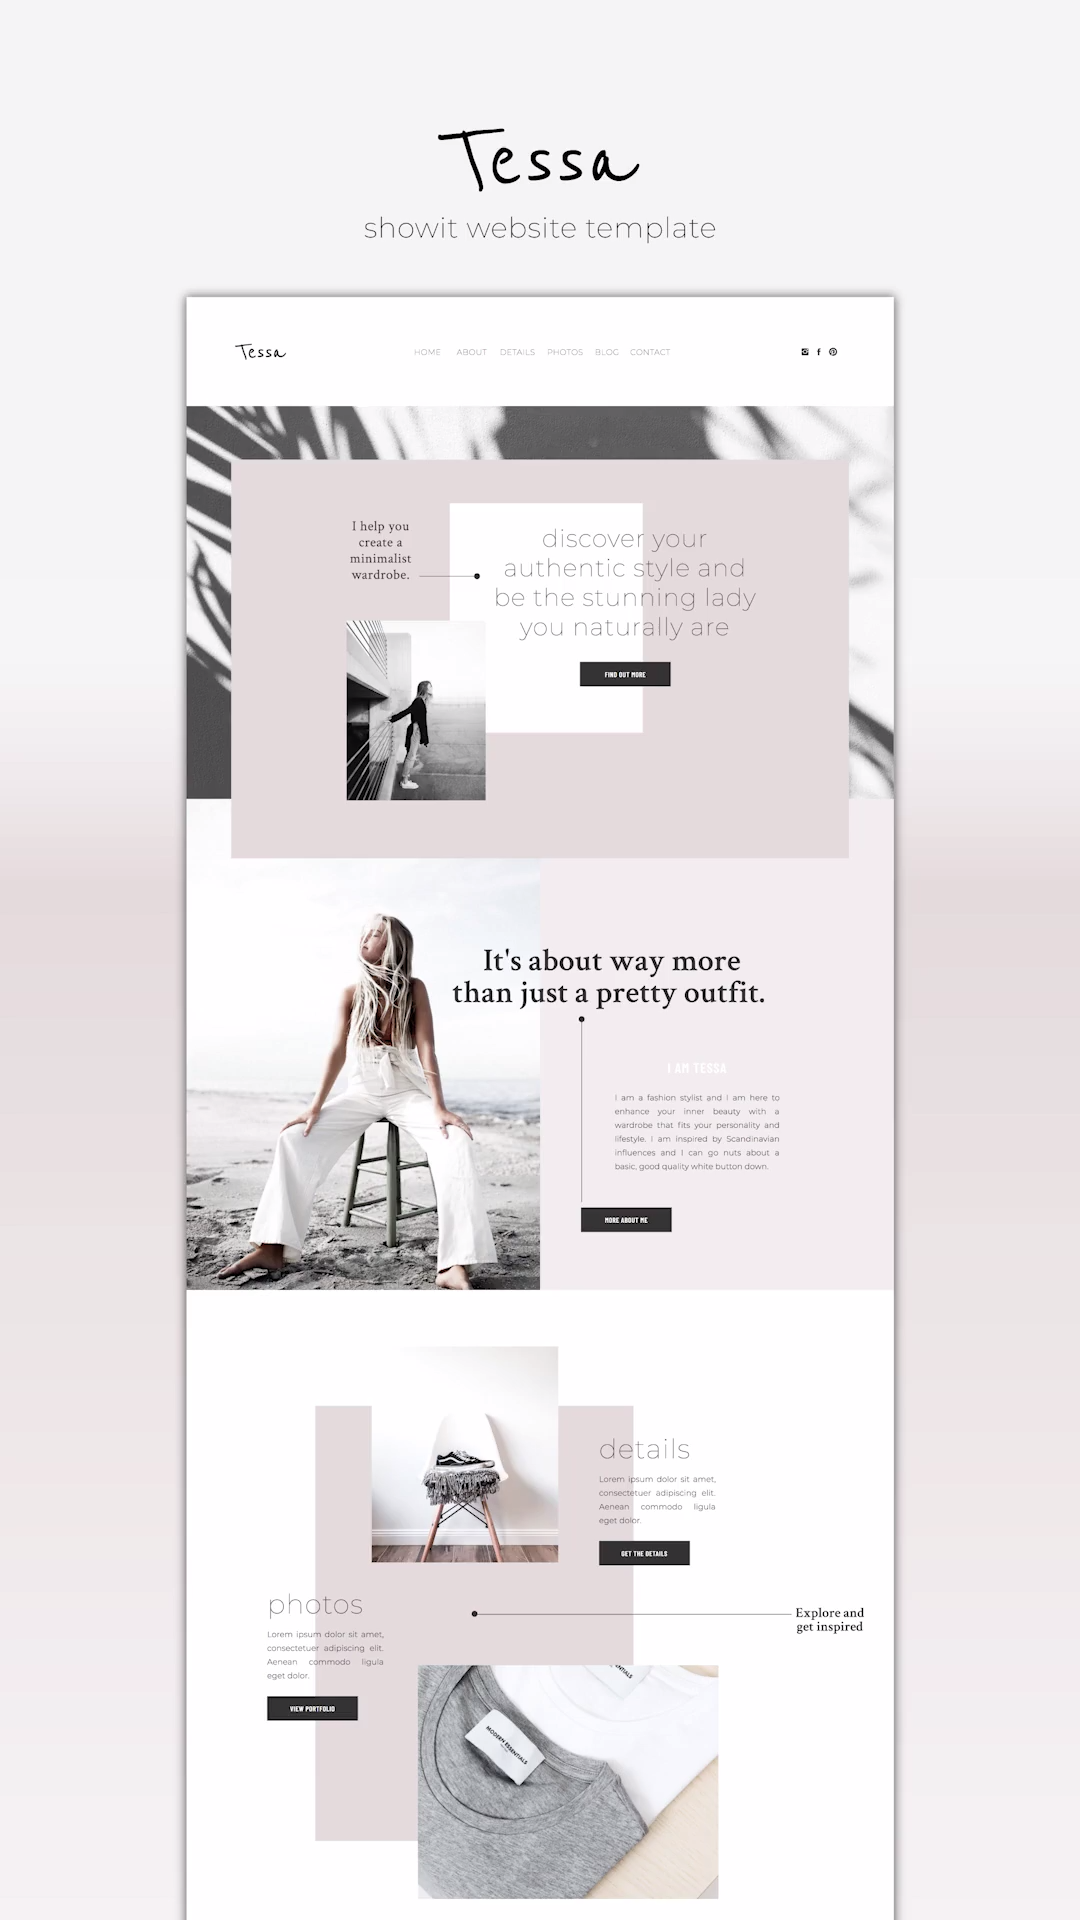 Designer-made Showit Website Template. Quickly launch a highly stylish website for a small budget. #showit #website #template #webdesign #branding #business #creative #professional #minimal #editorial #best #style #modern #love